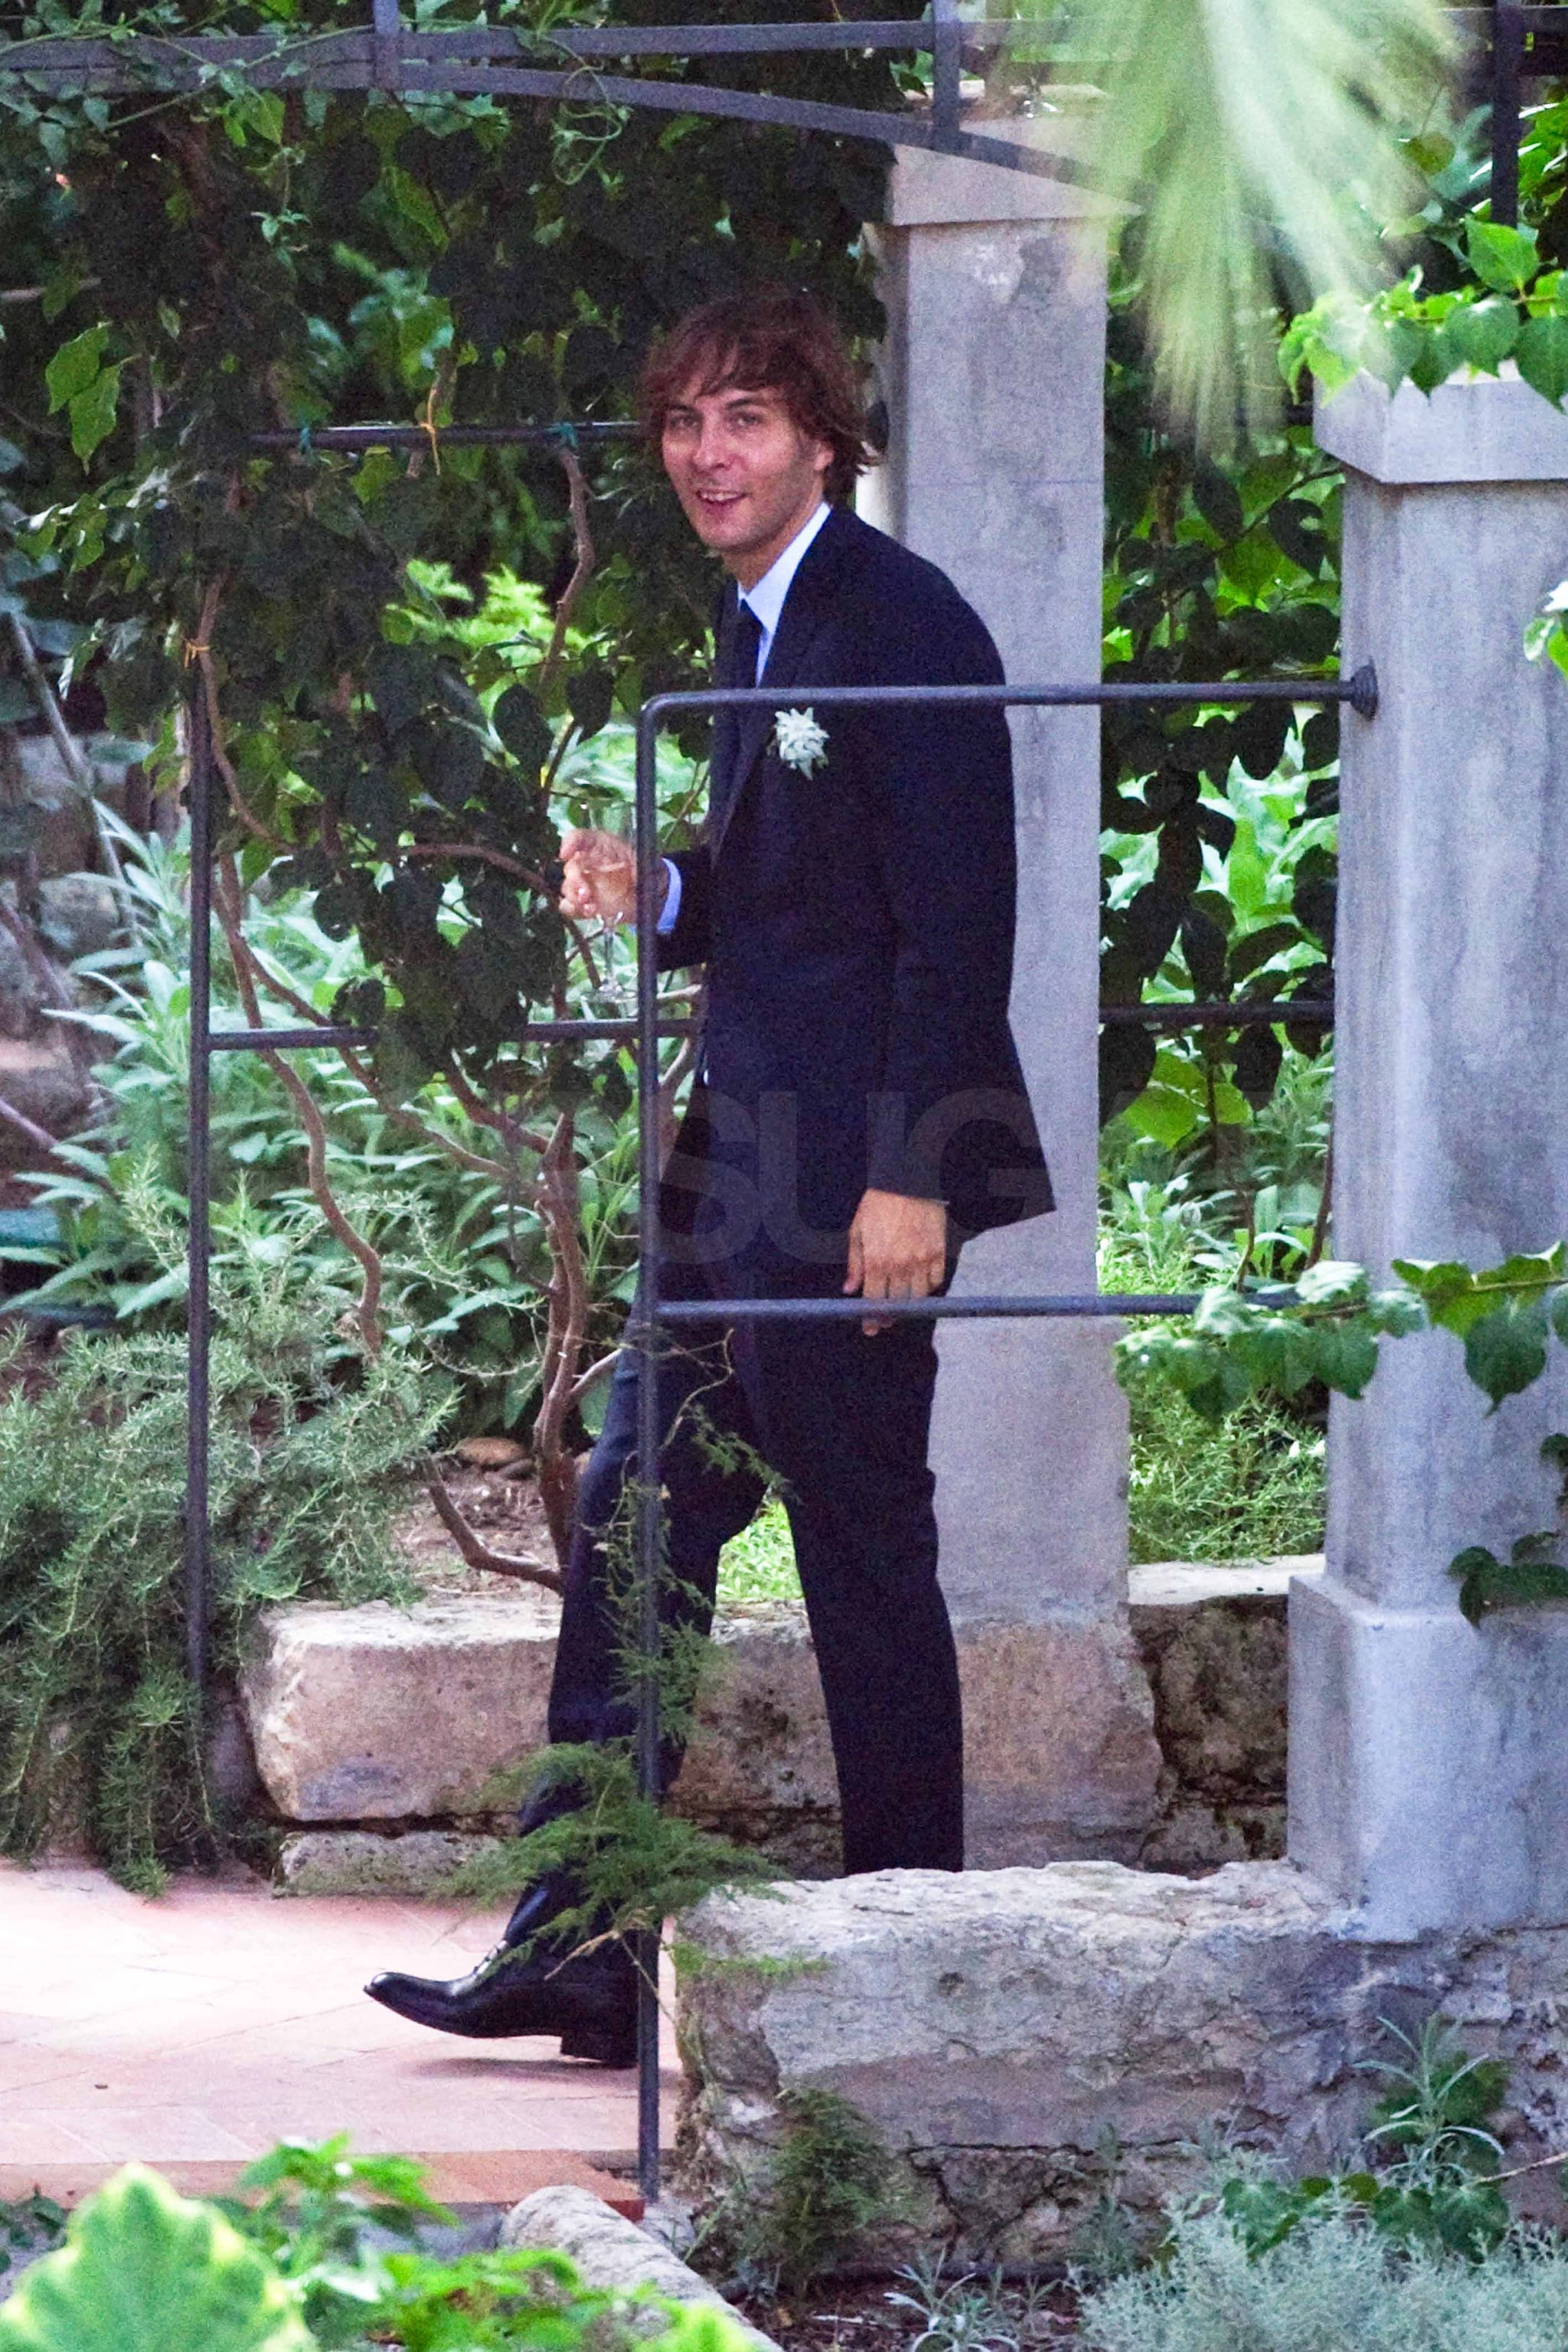 Thomas Mars wore a dark suit to the ceremony.